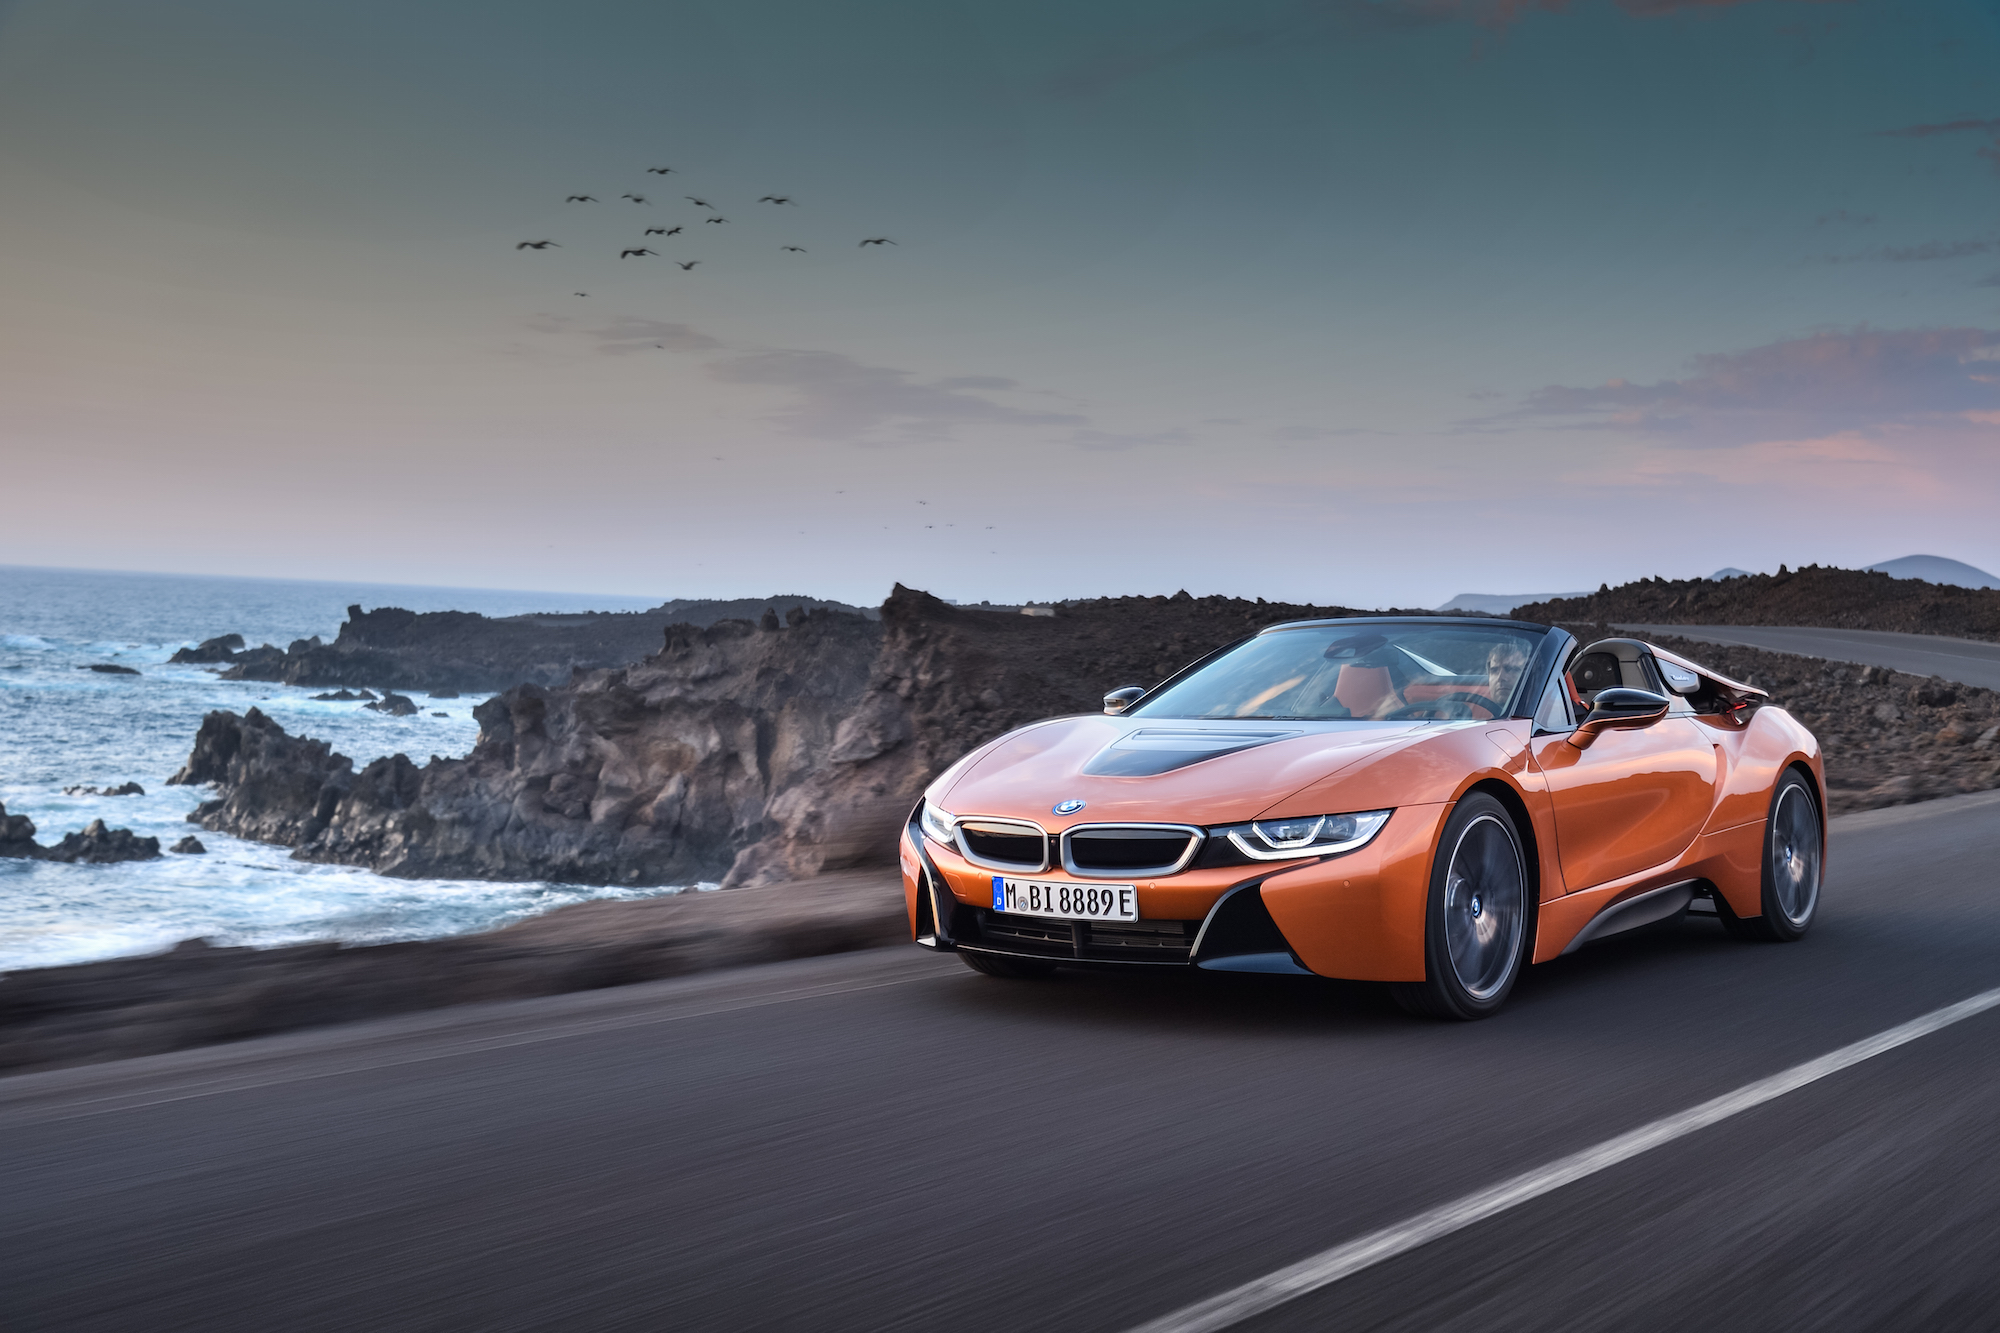 2019 Bmw I8 Roadster First Look Canadian Auto Review